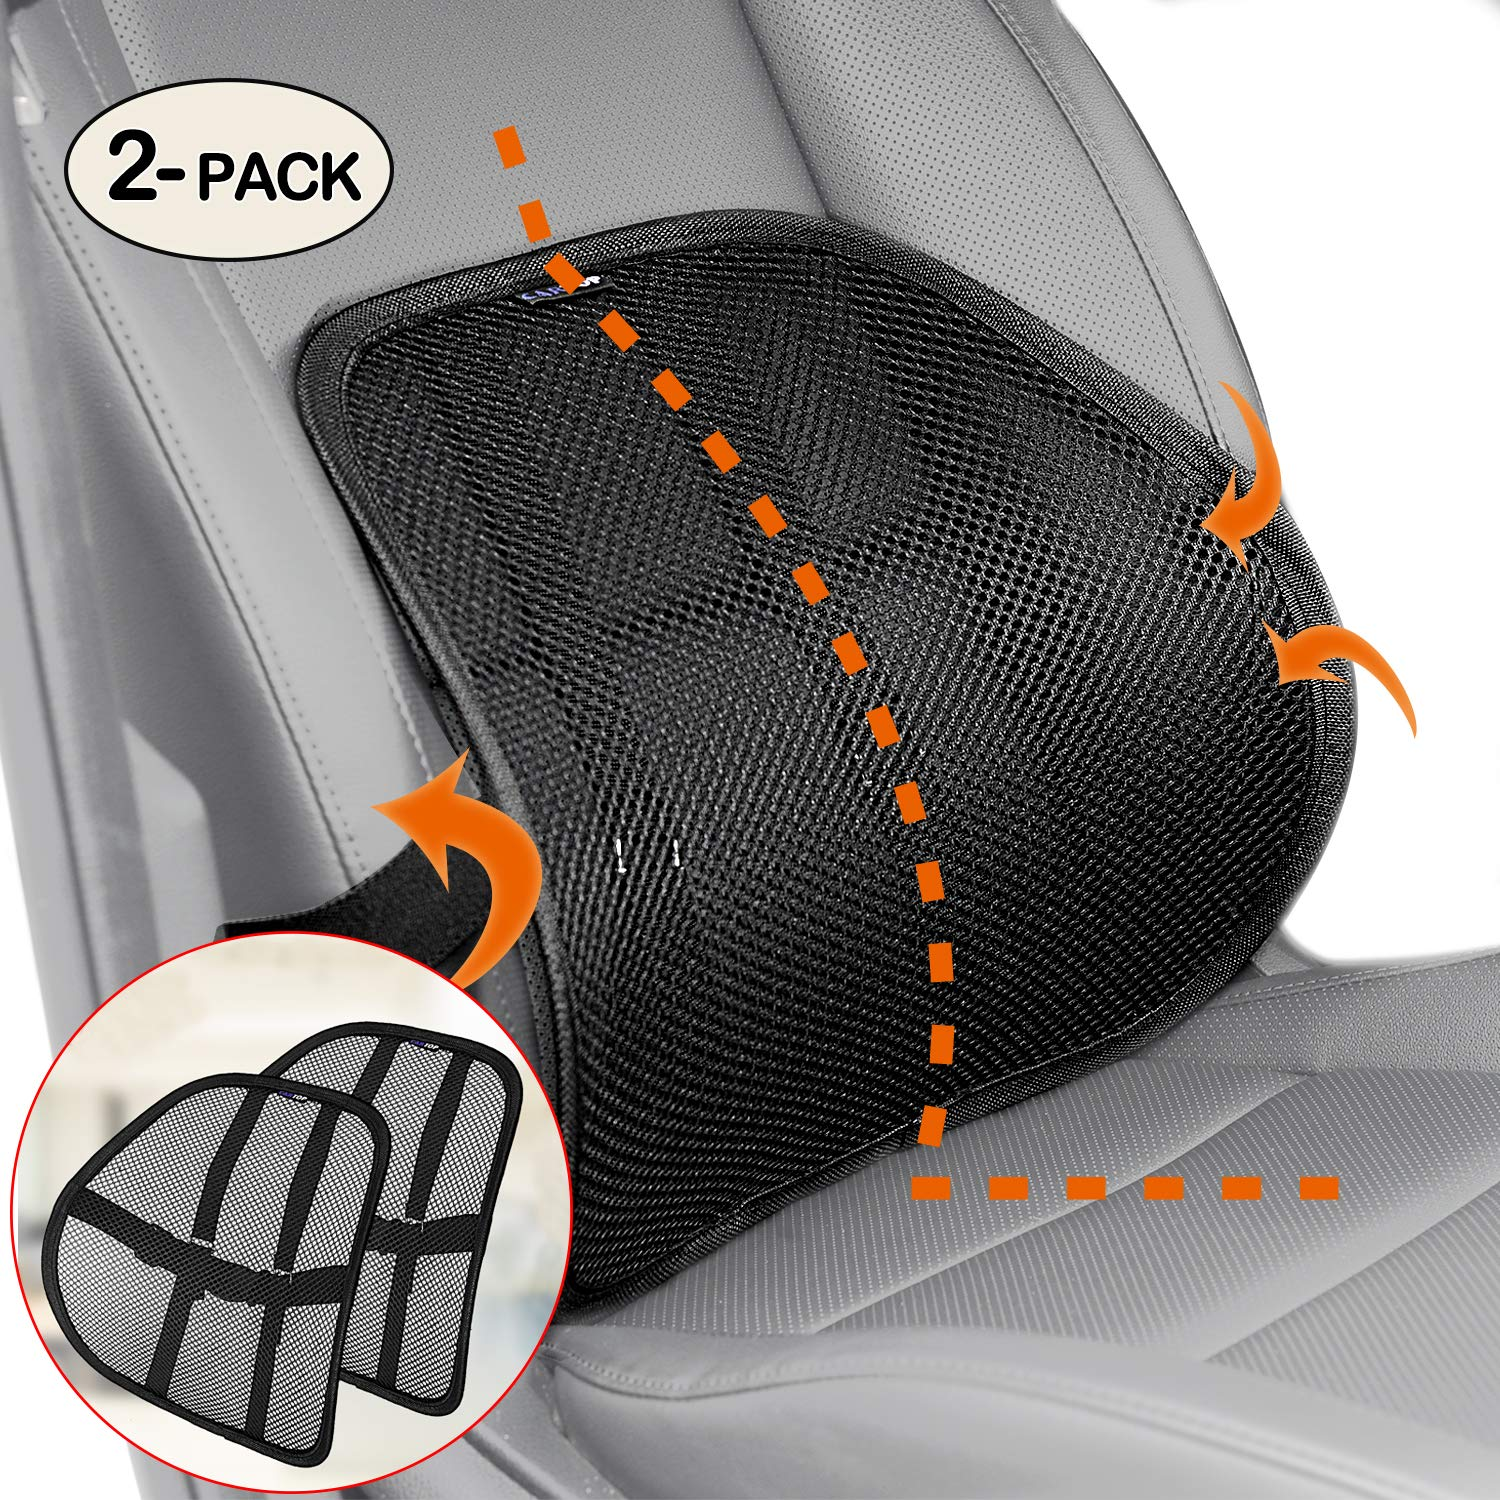 Lumbar Support, Cartop Mesh Back Cushion 2 Pack Lower Back Support, Double Mesh Lumbar Cushion Air Flow Breathable Back Support Cushion - Suitable for Office Chair Home Car (2-Pack) by Cartop